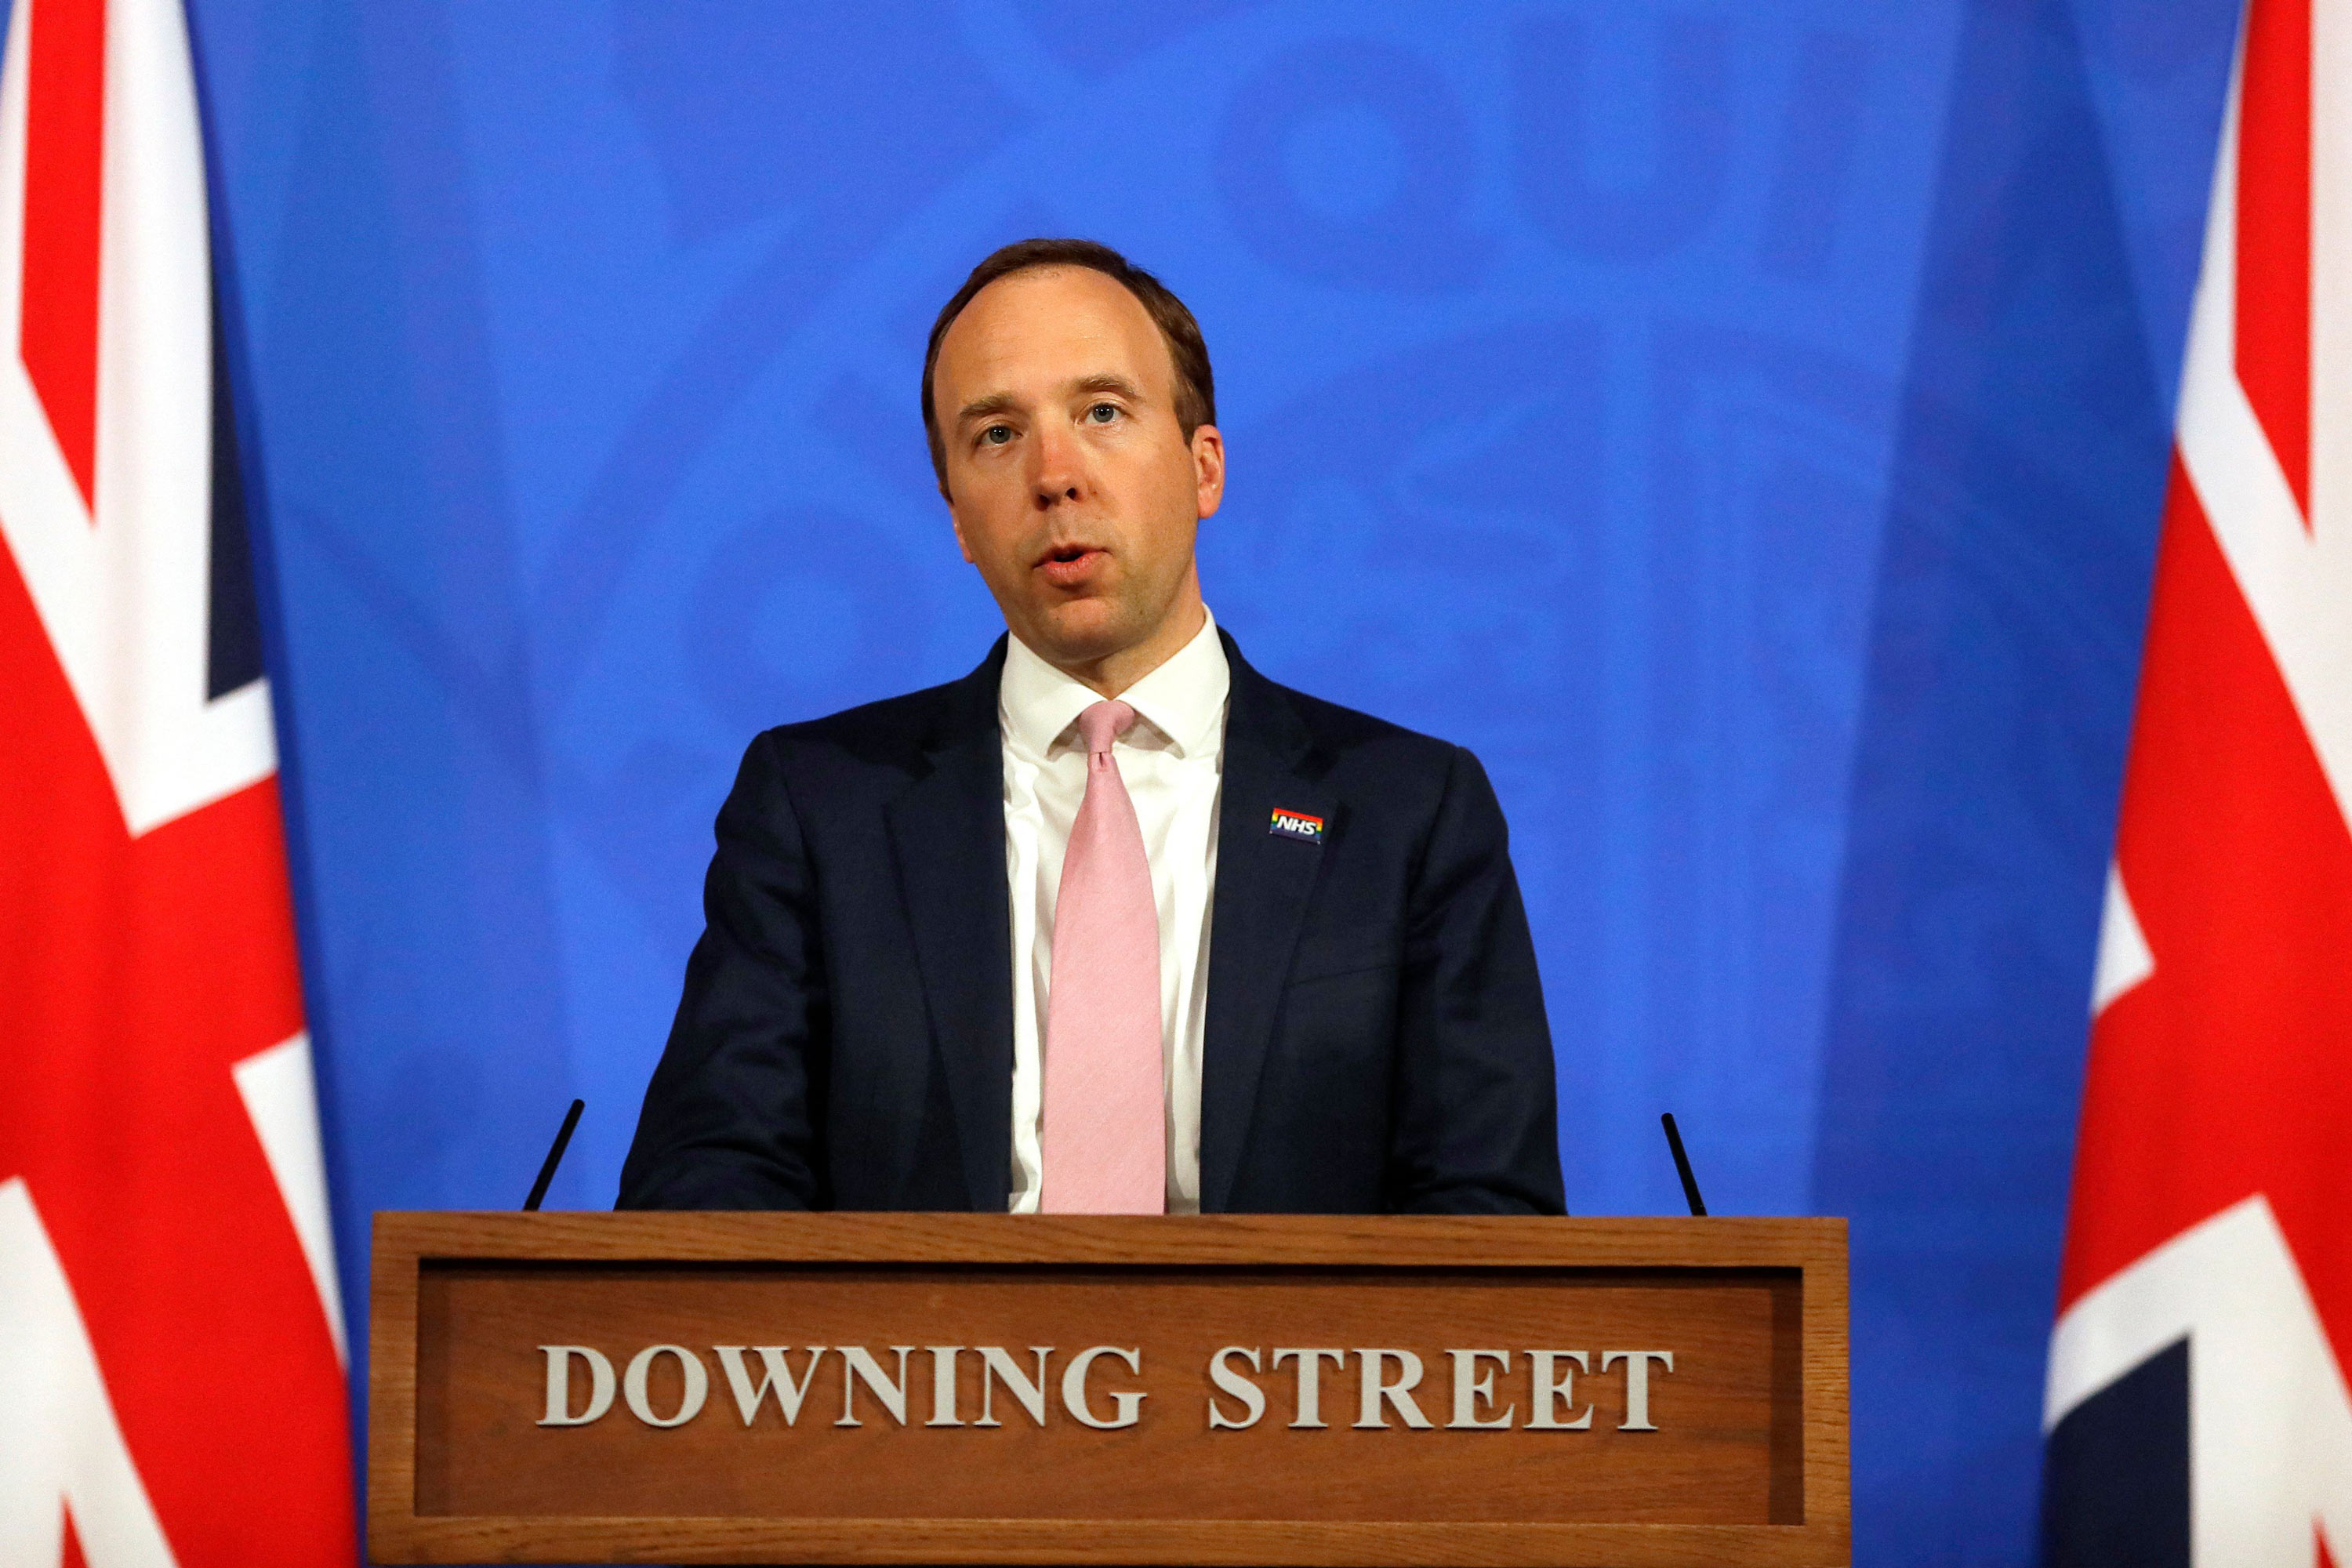 Britain's Health Secretary Matt Hancock speaks during a virtual press conference inside the new Downing Street Briefing Room in London on April 28.